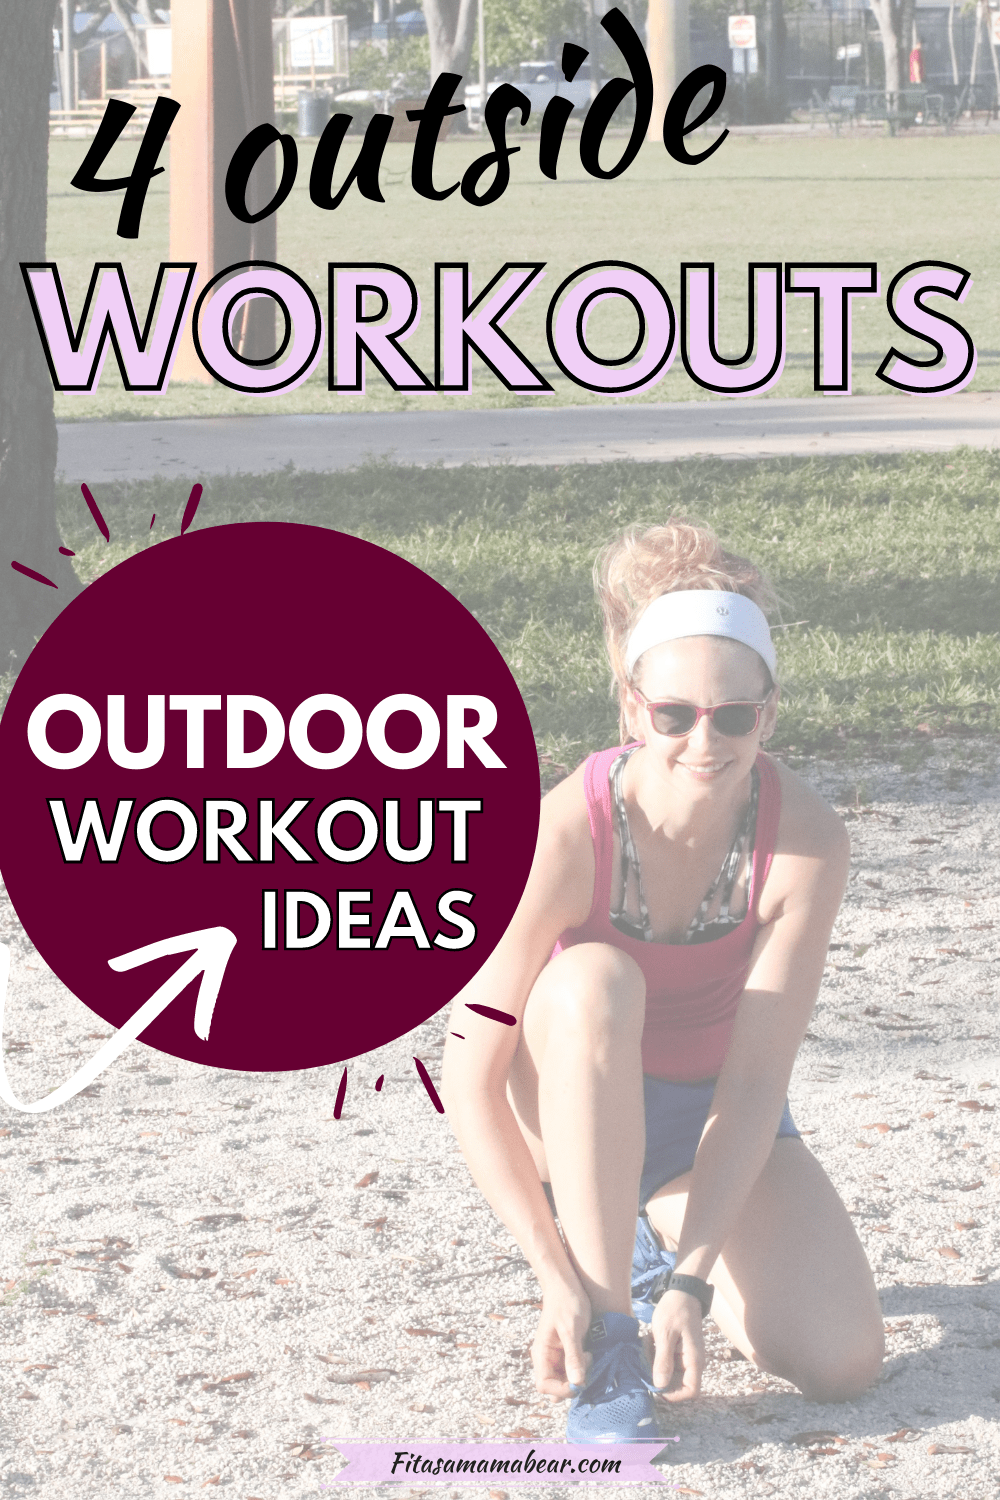 Pinterest image with text: woman in pink shirt and blue shorts kneeling down outside to tie her shoelace